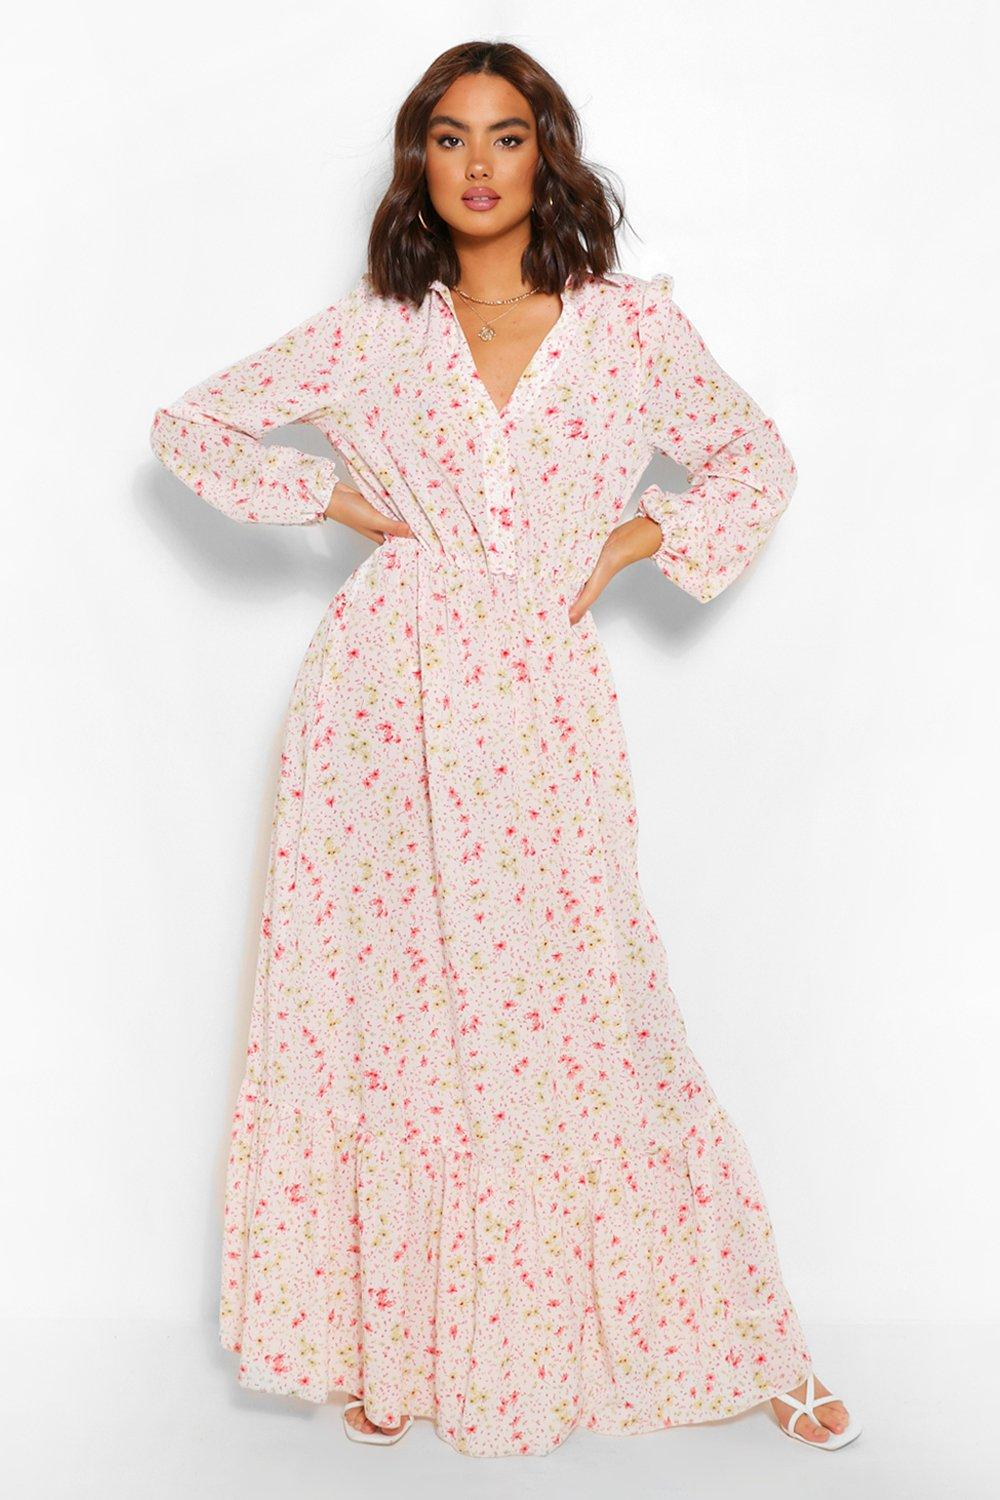 80s Dresses | Casual to Party Dresses Womens Floral Button Down Maxi Dress - White - 10 $24.00 AT vintagedancer.com